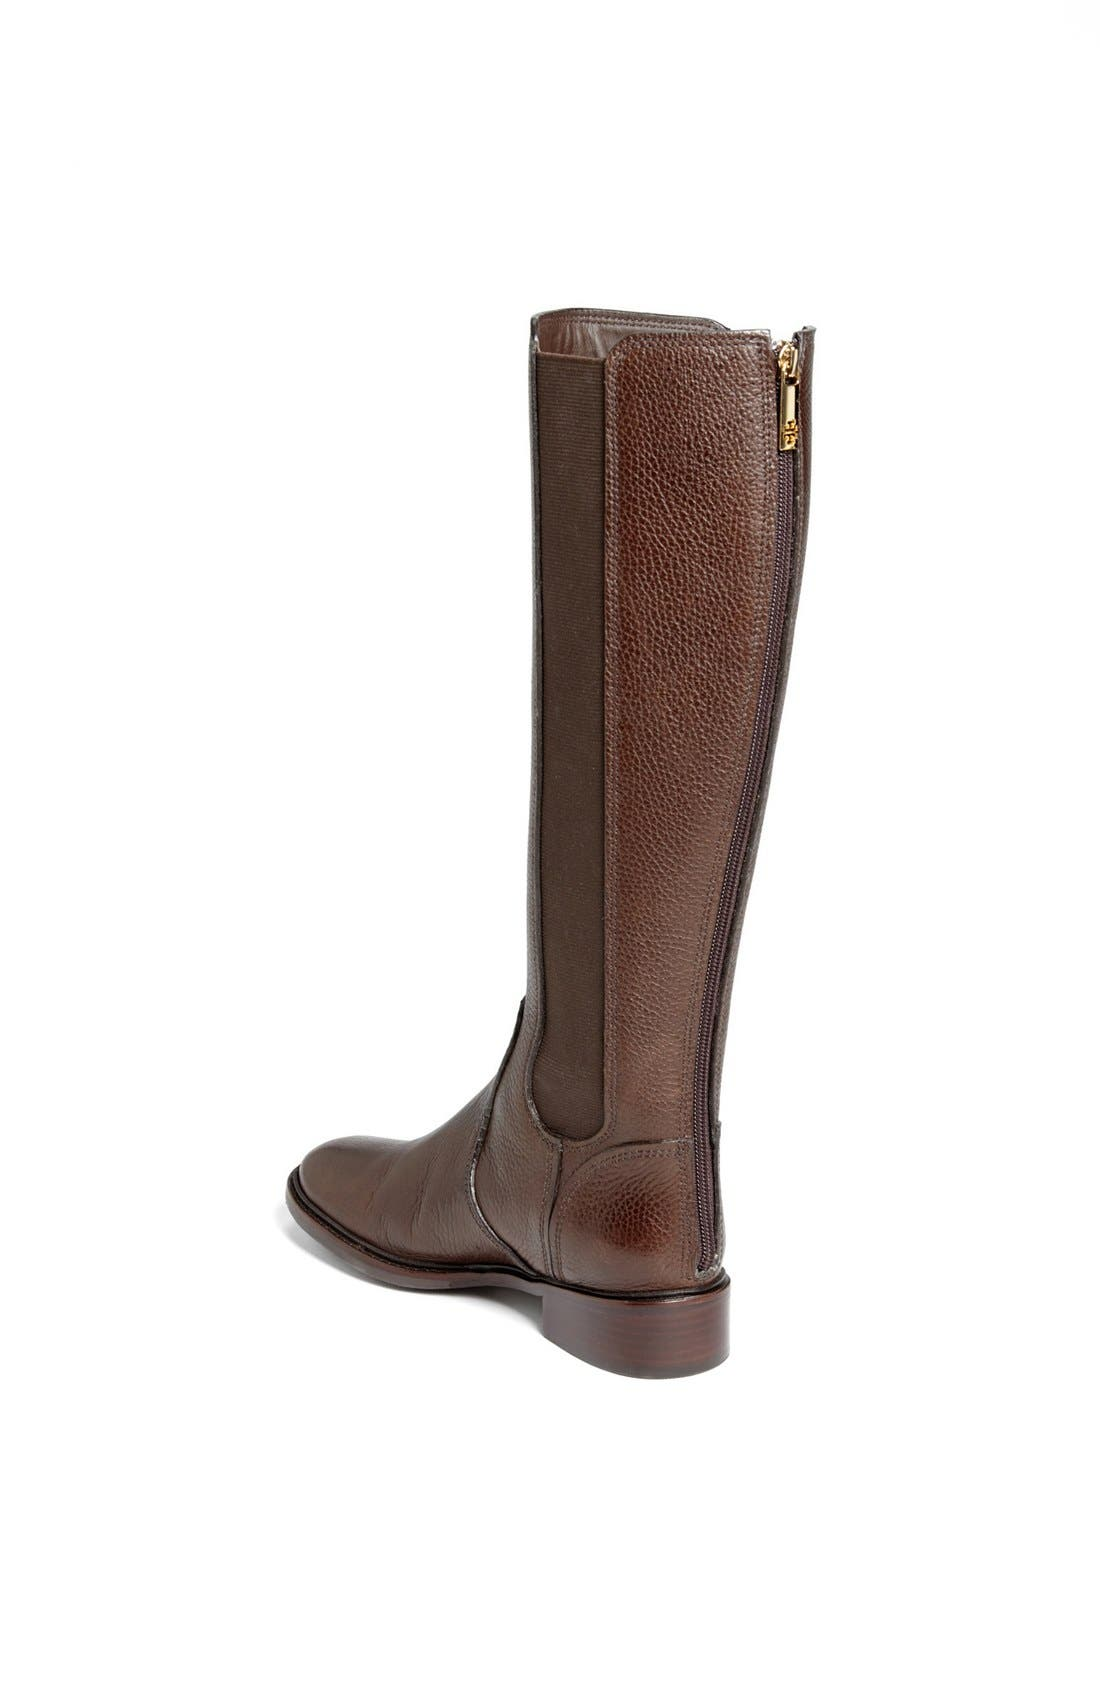 Alternate Image 2  - Tory Burch 'Christy' Leather Riding Boot